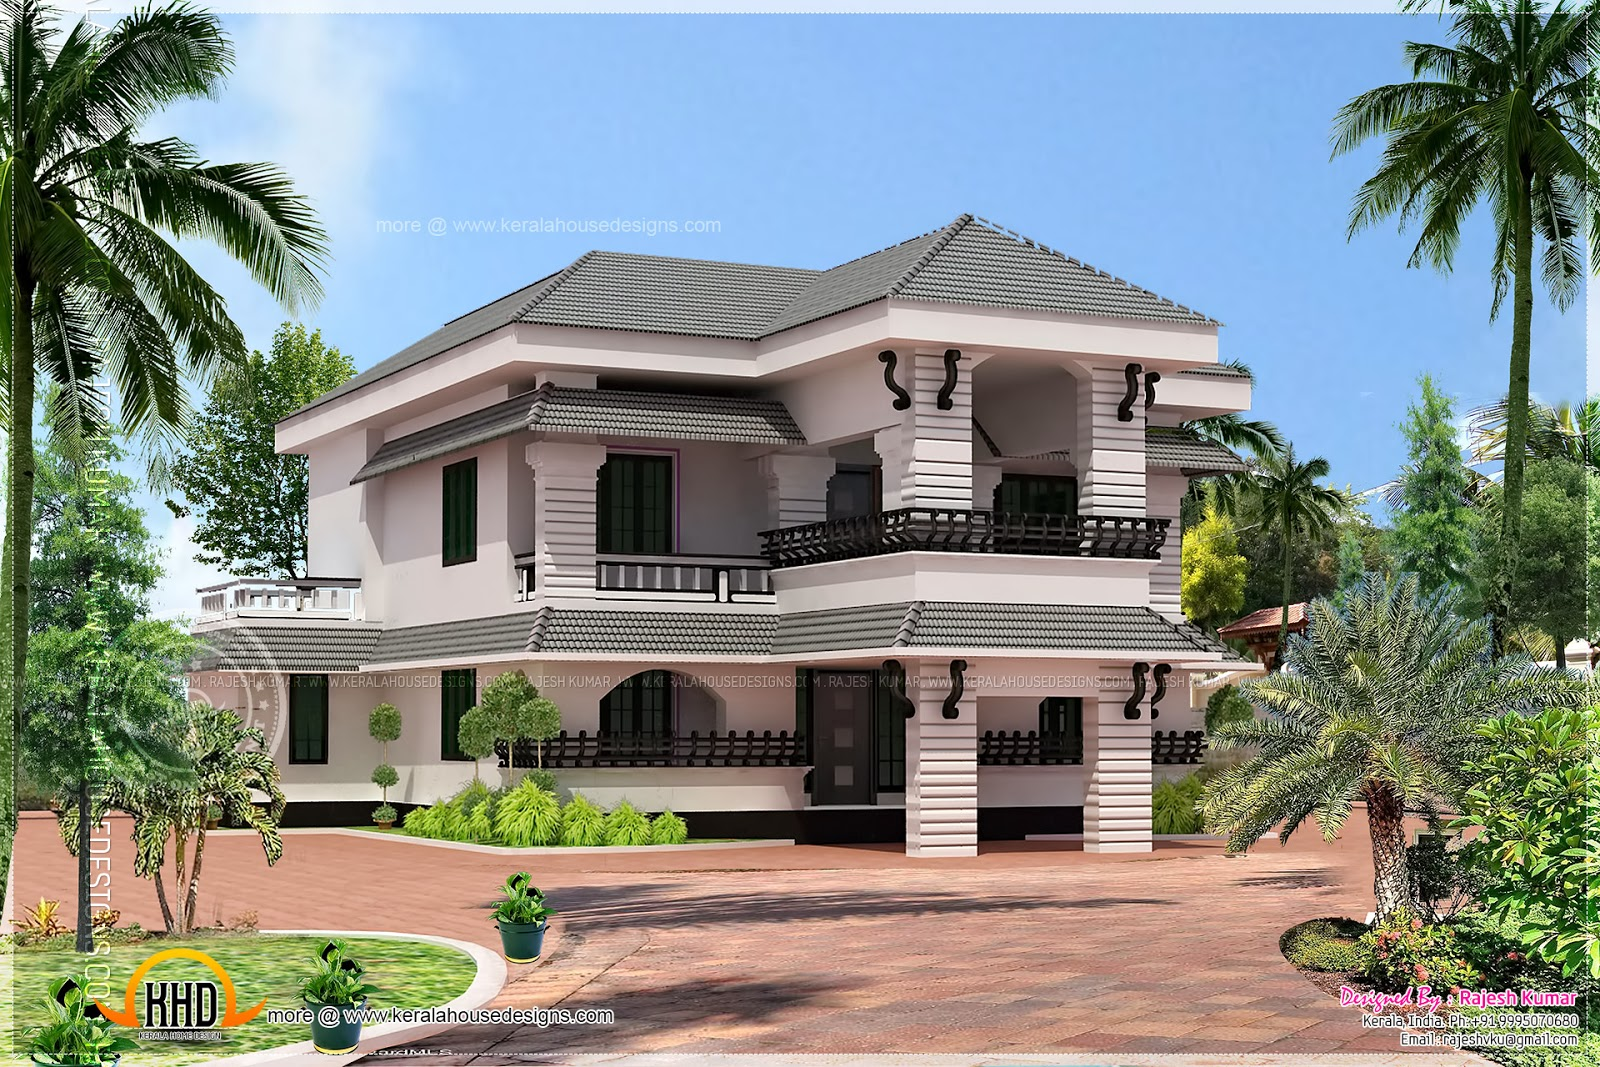 Malabar model home design kerala home design and floor plans for The house design